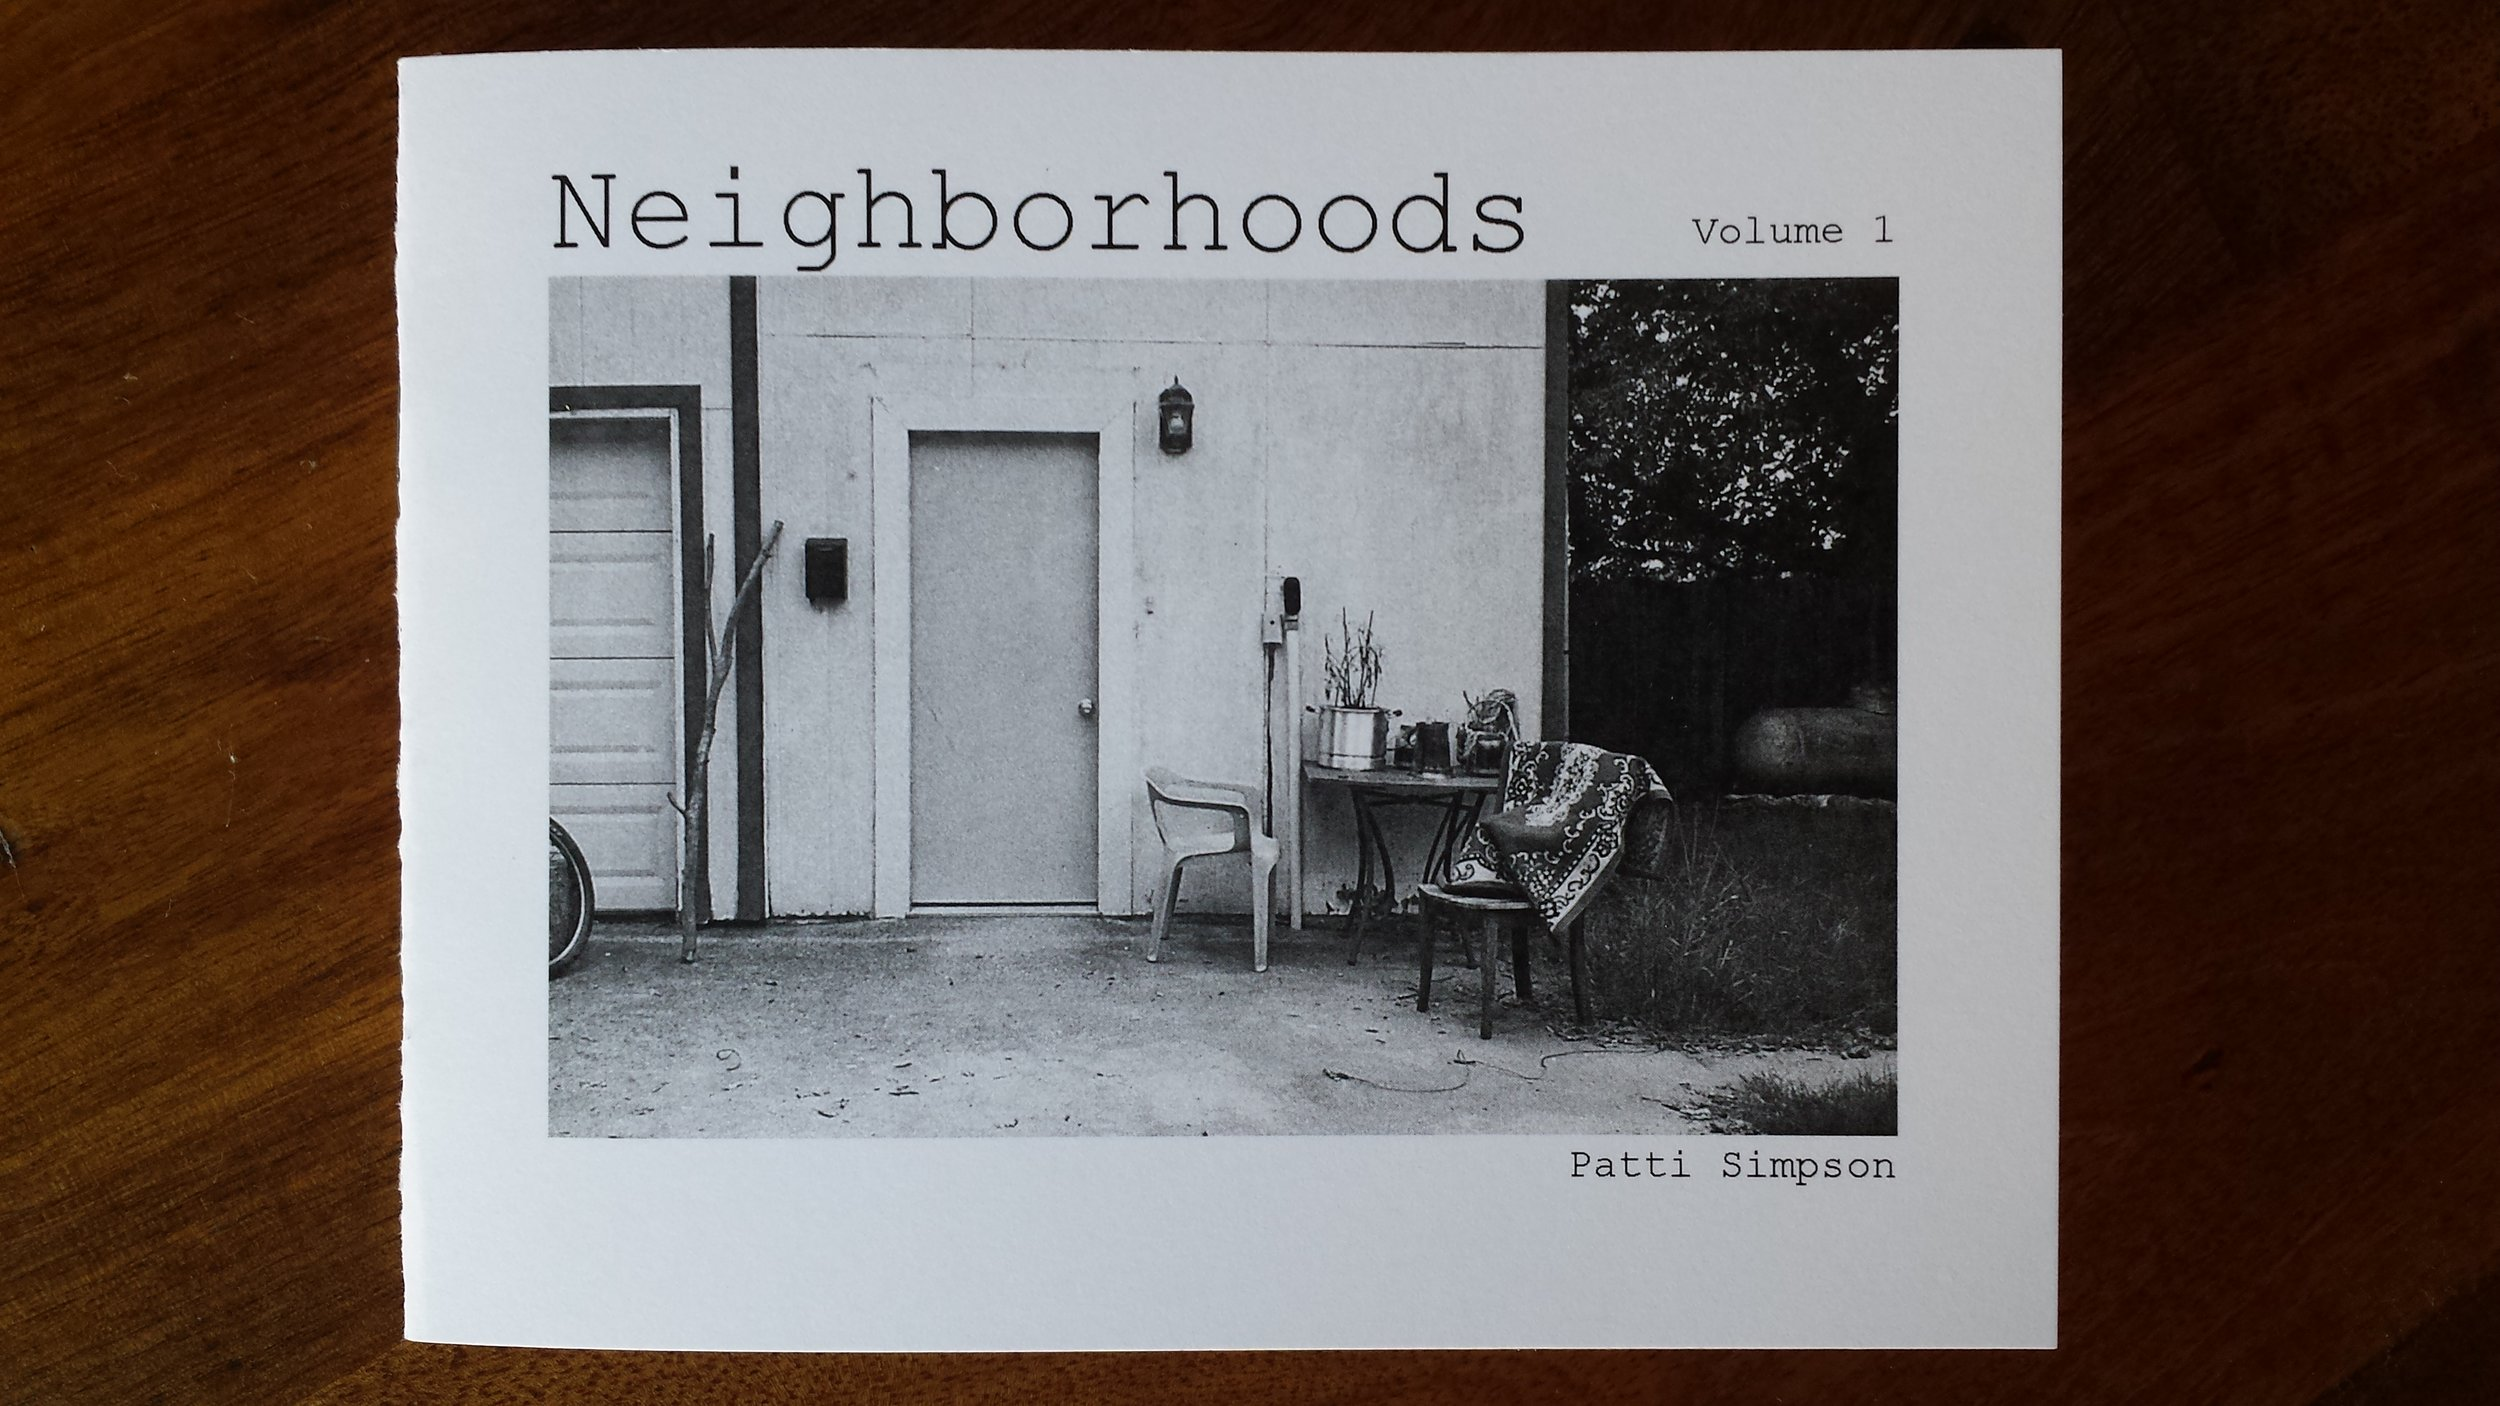 """This little zine is 4.25"""" x 5.5"""". It is 16 pages and includes 17 black and white images all shot on 35mm film and home processed.I can only accept paypal at the moment or you are welcome to mail me $3 :-) There is a $2 shipping fee for international orders.Paypal payments can be sent to octopossum@outlook.com Please include shipping information. Thank you!!"""